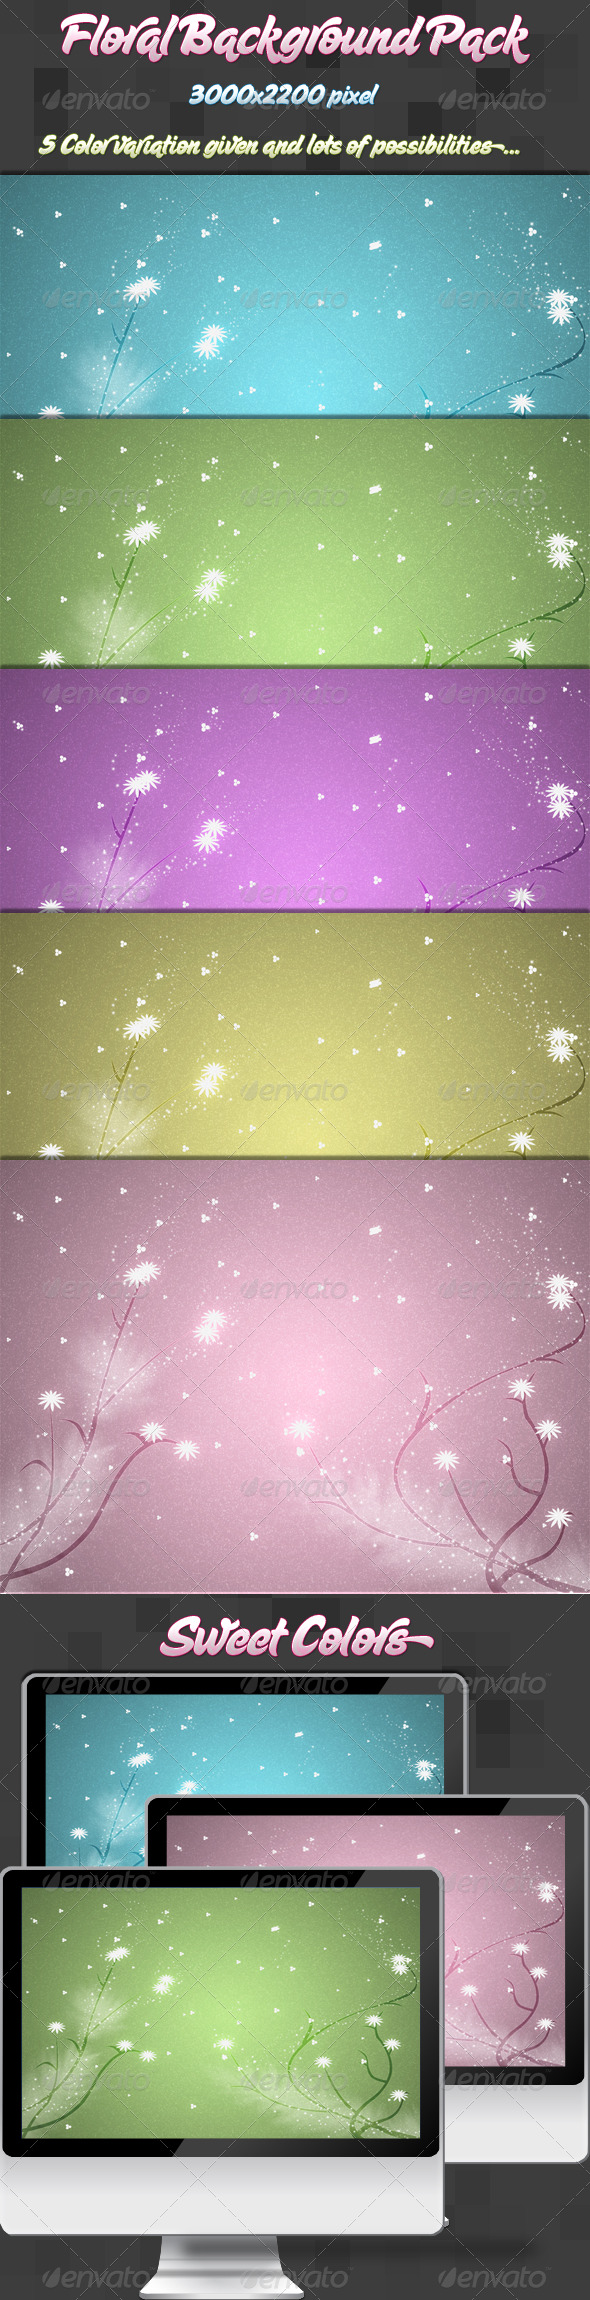 Floral Background Pack - Abstract Backgrounds